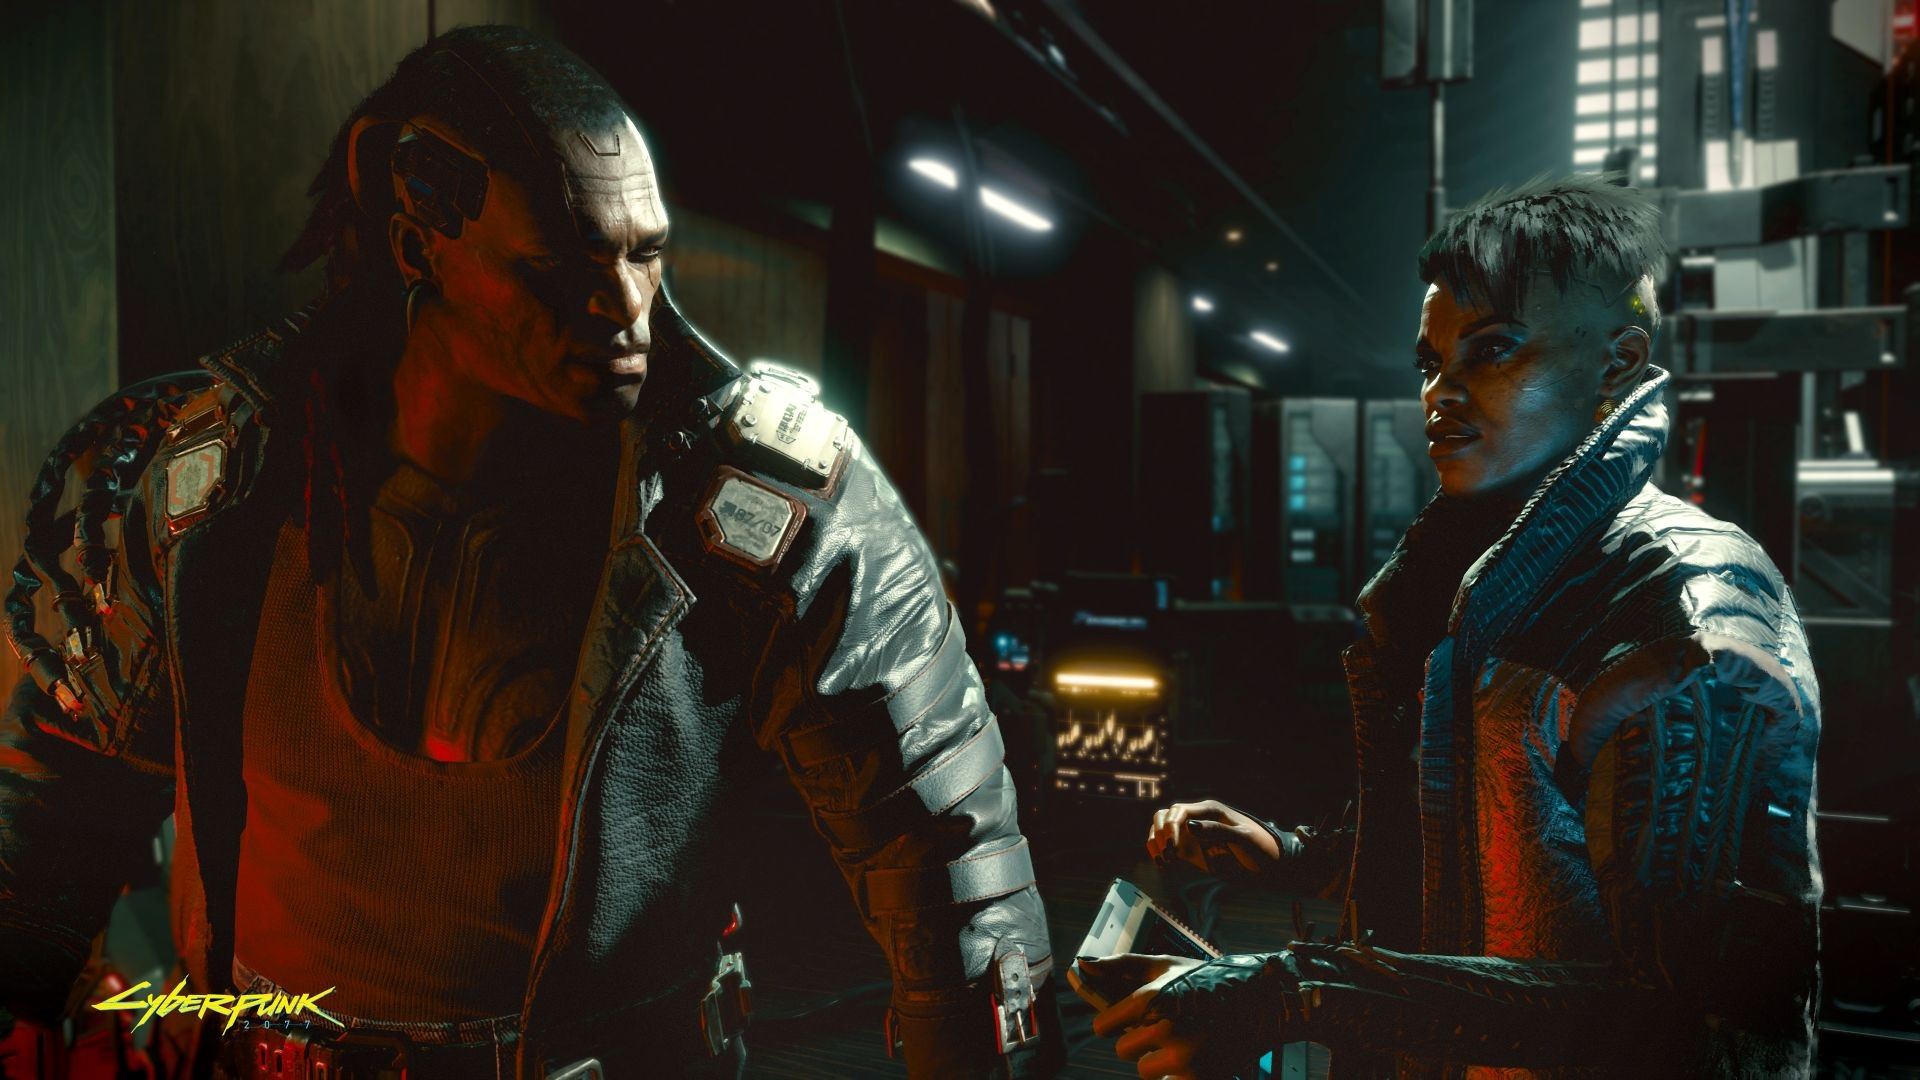 Cyberpunk 2077 dev calls cutting features 'a very normal part of development'